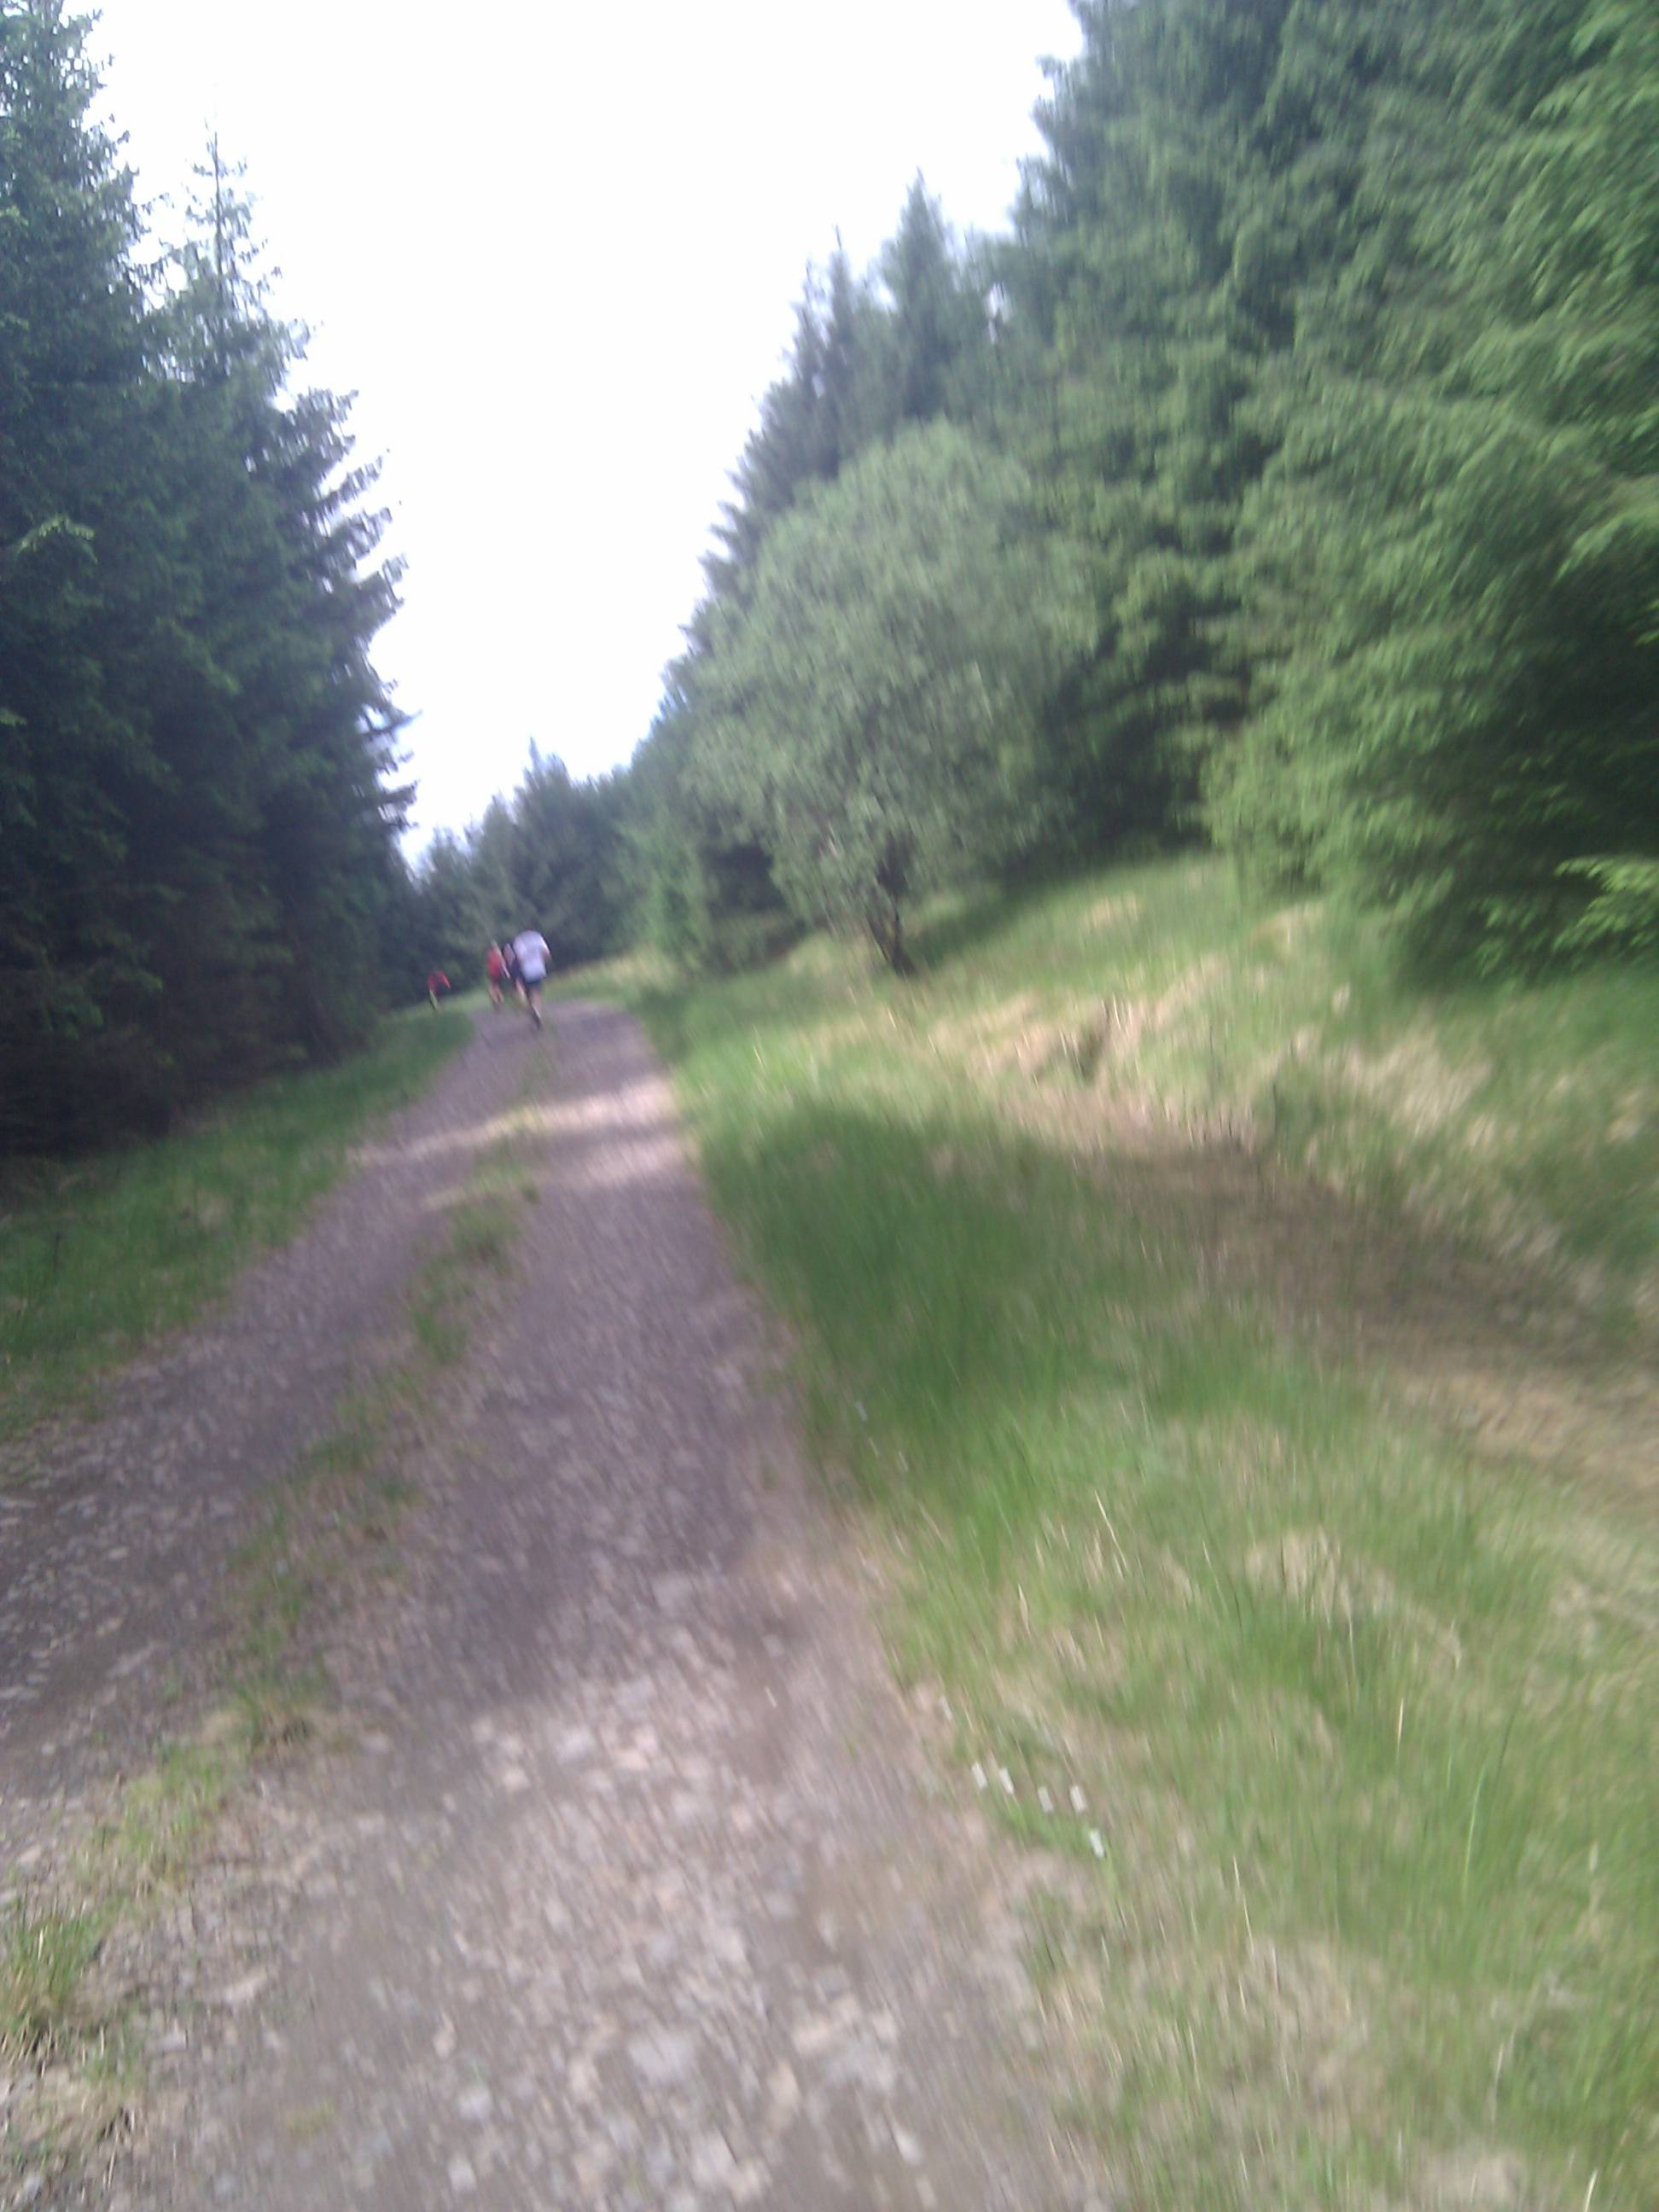 A shaky shot running in the forest.